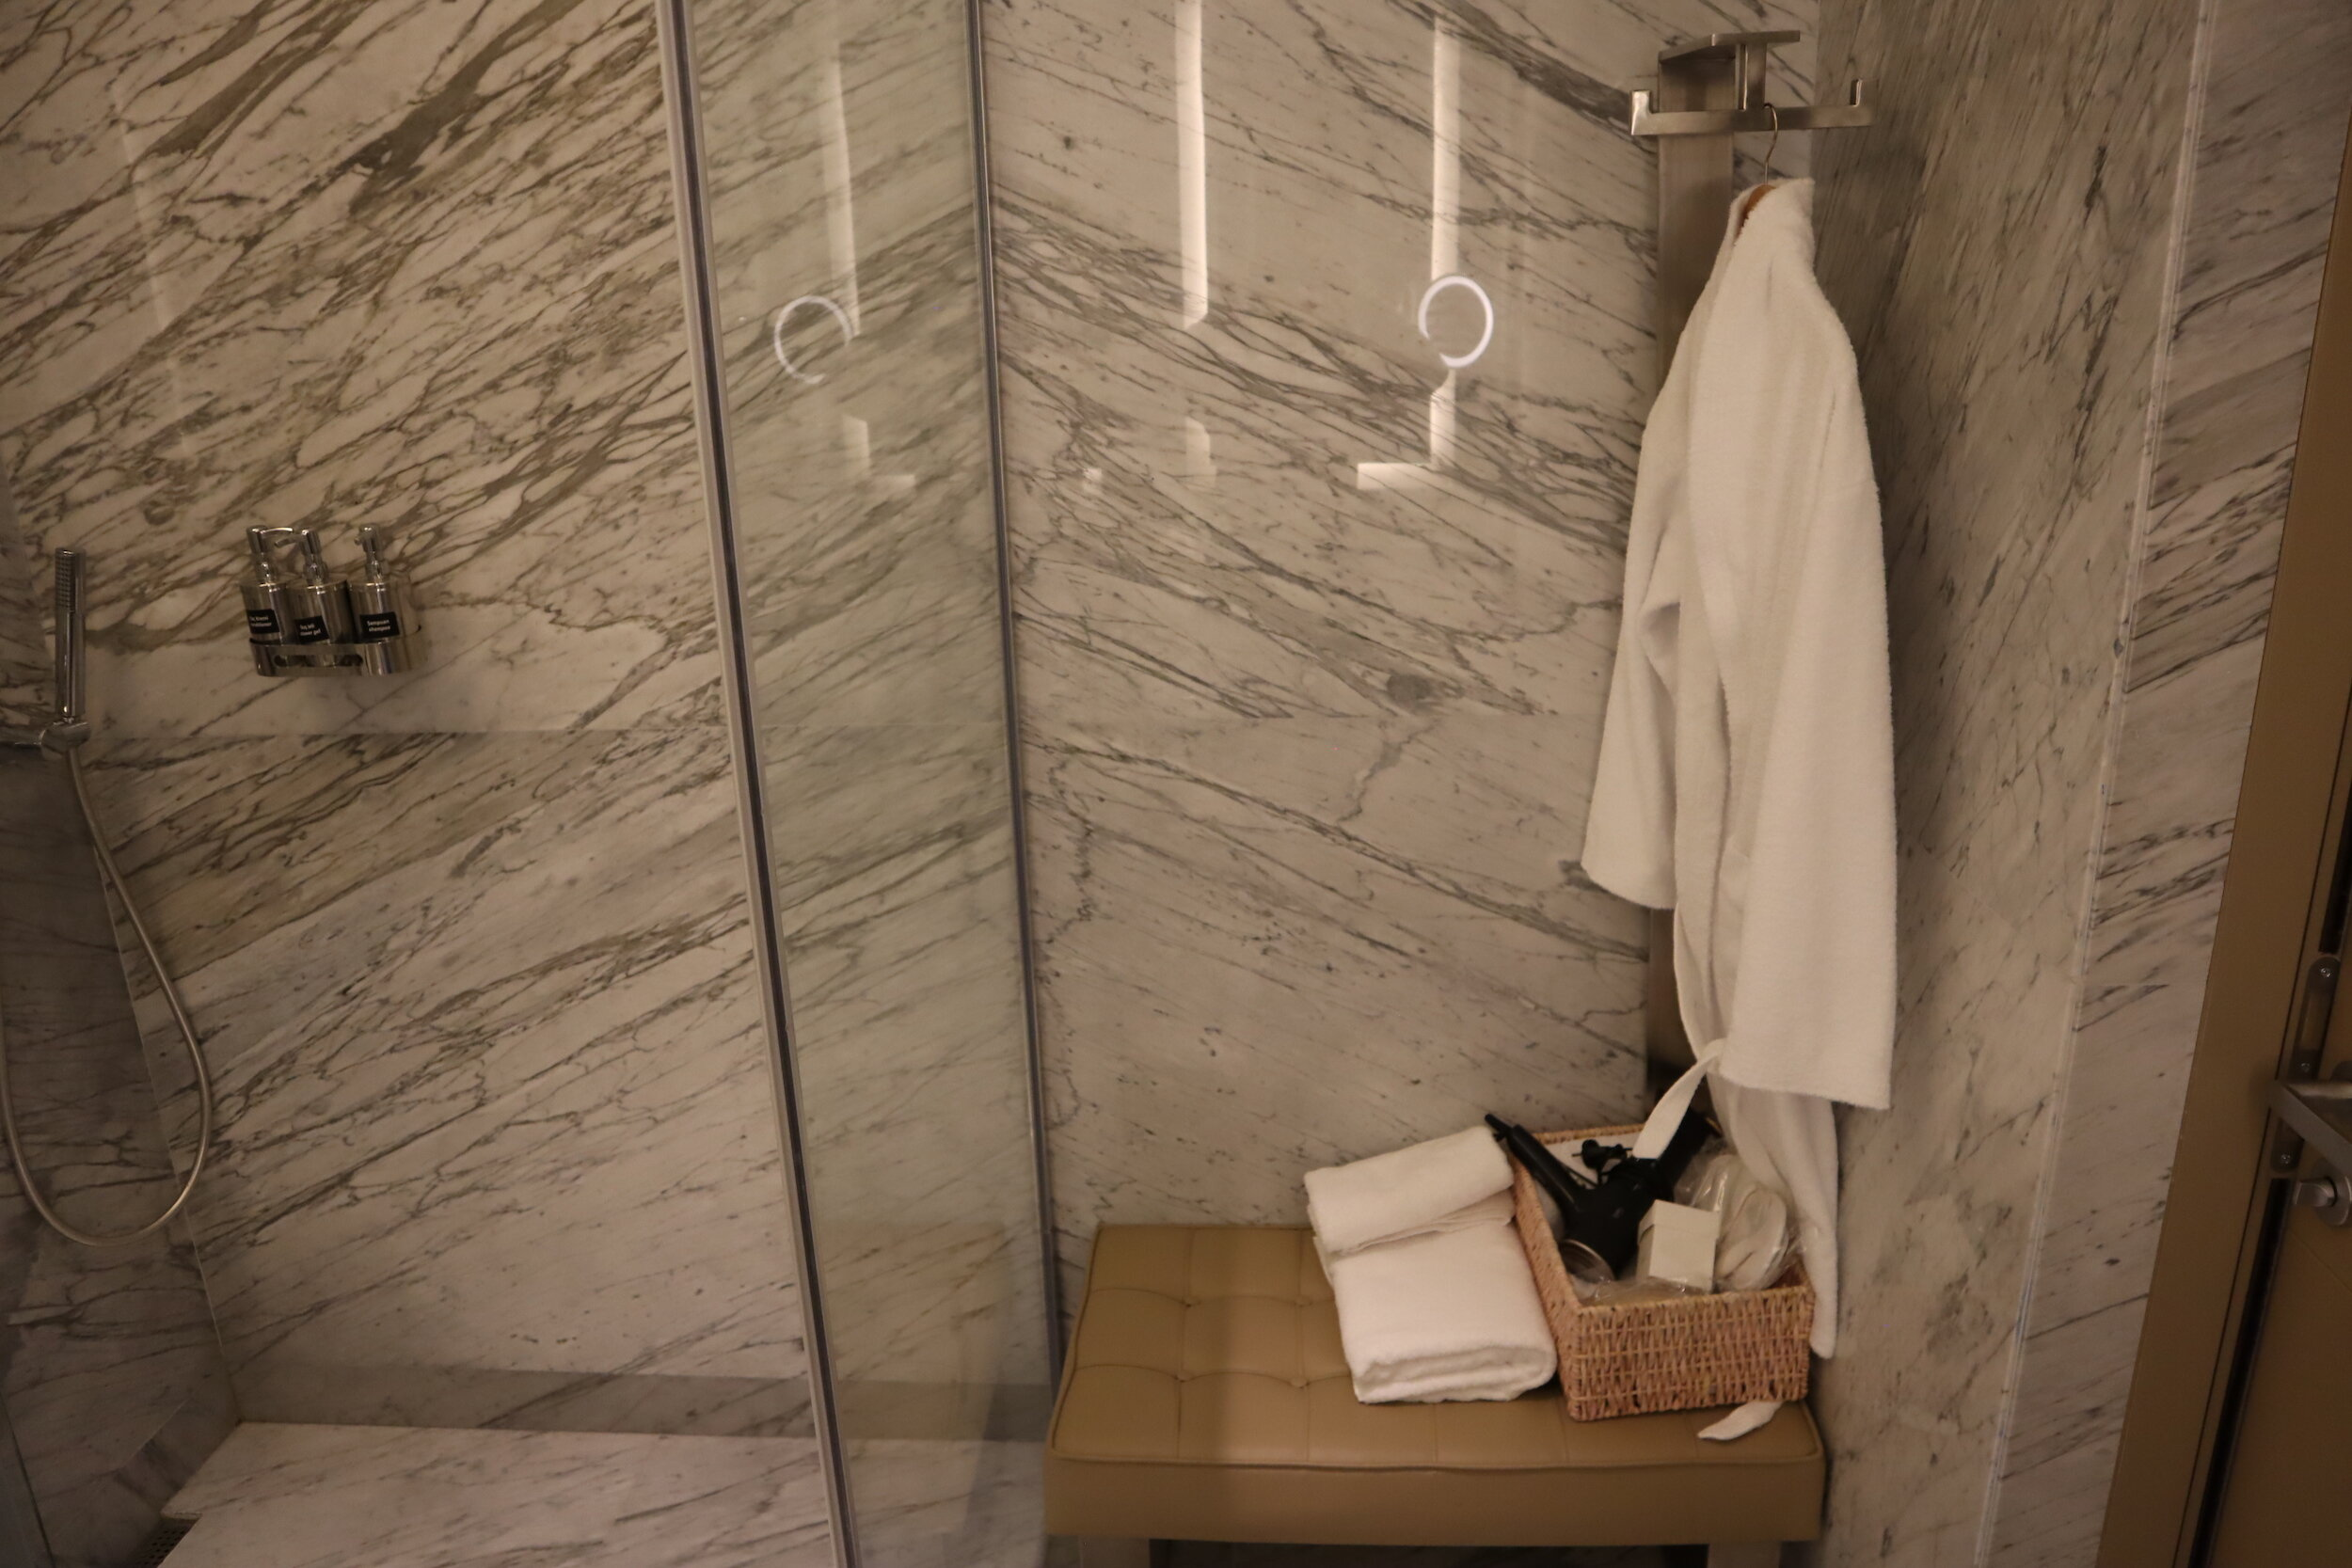 Turkish Airlines Business Lounge Istanbul – Shower